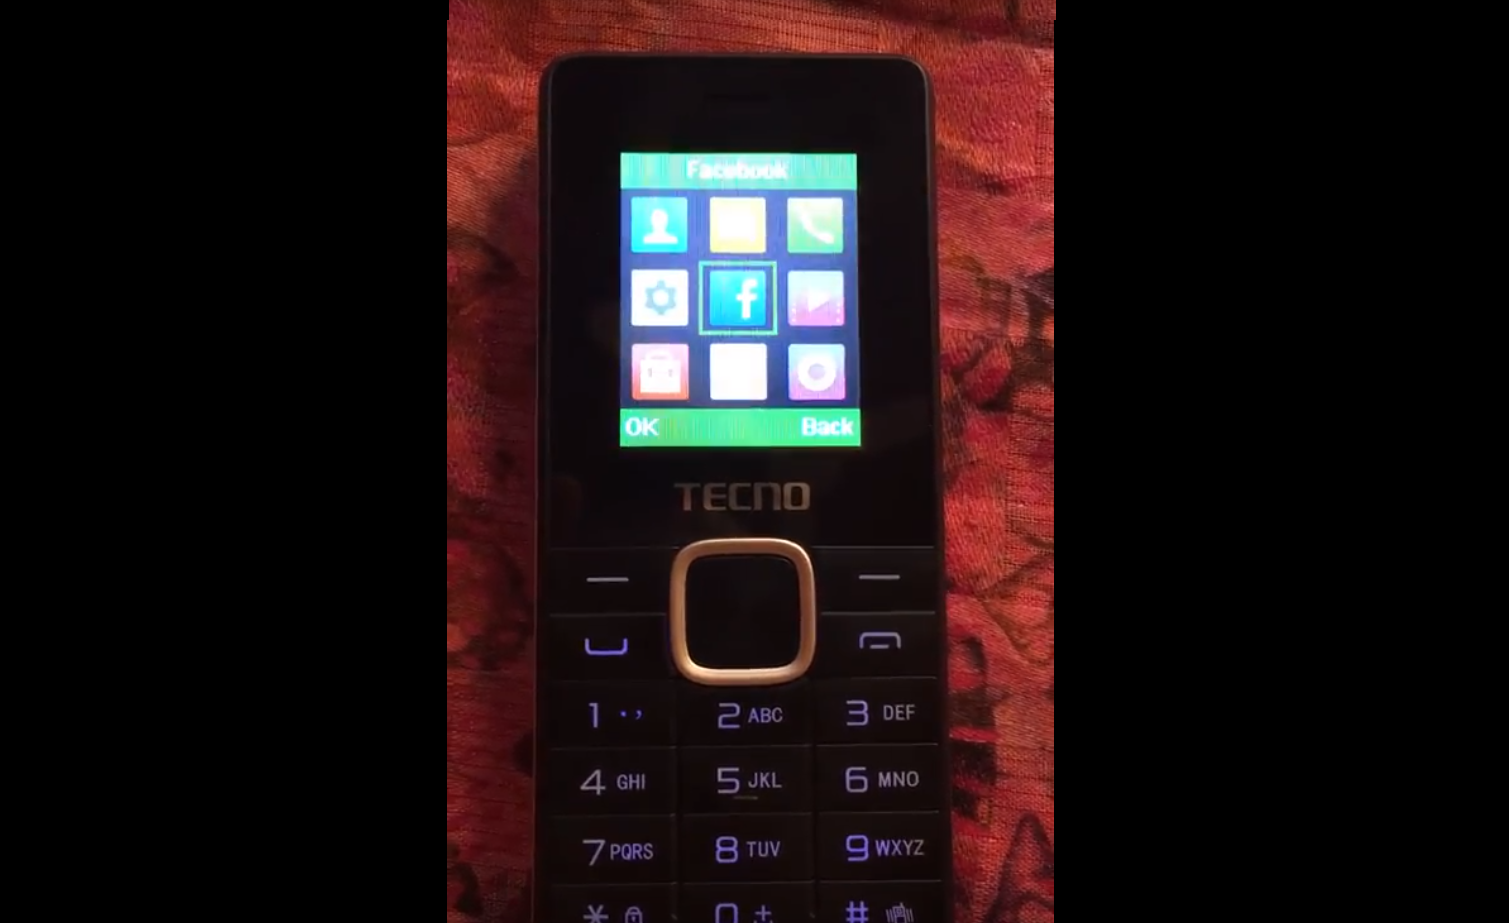 Mobile phone with Facebook tile in center of the screen